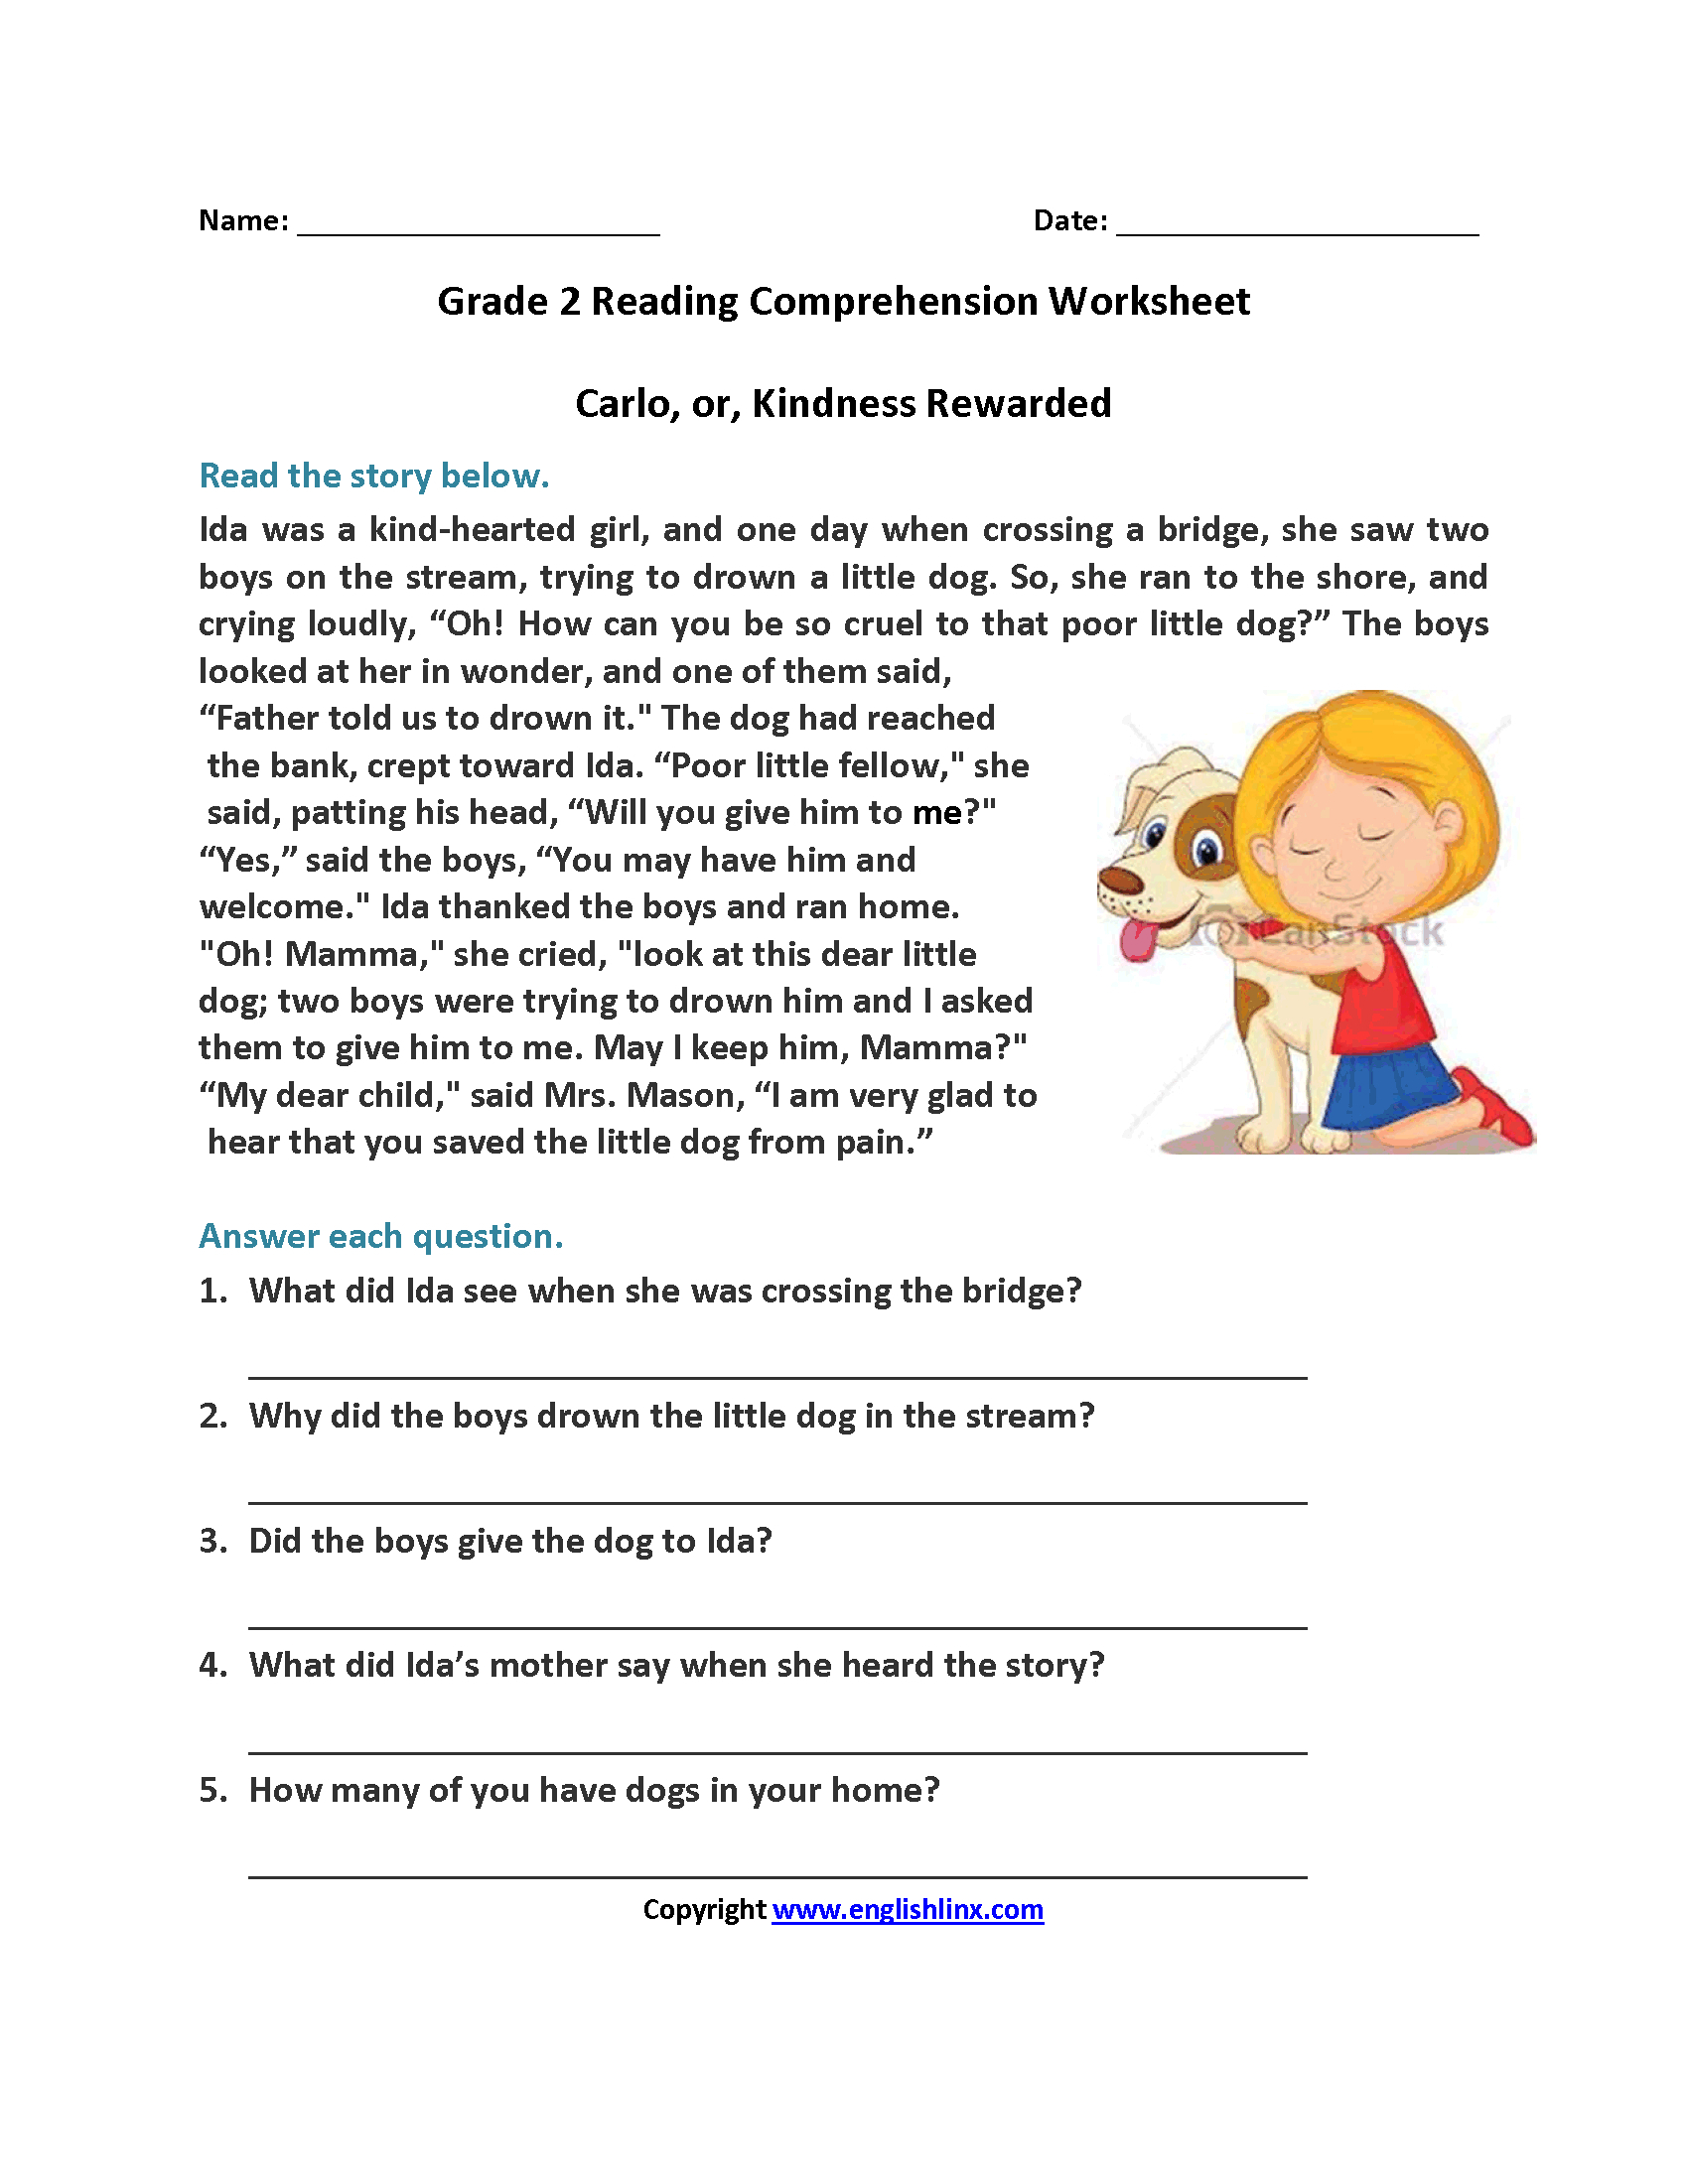 Carlo Or Kindness Rewarded Second Grade Reading Worksheets | Reading | Free Printable Reading Comprehension Worksheets Grade 5